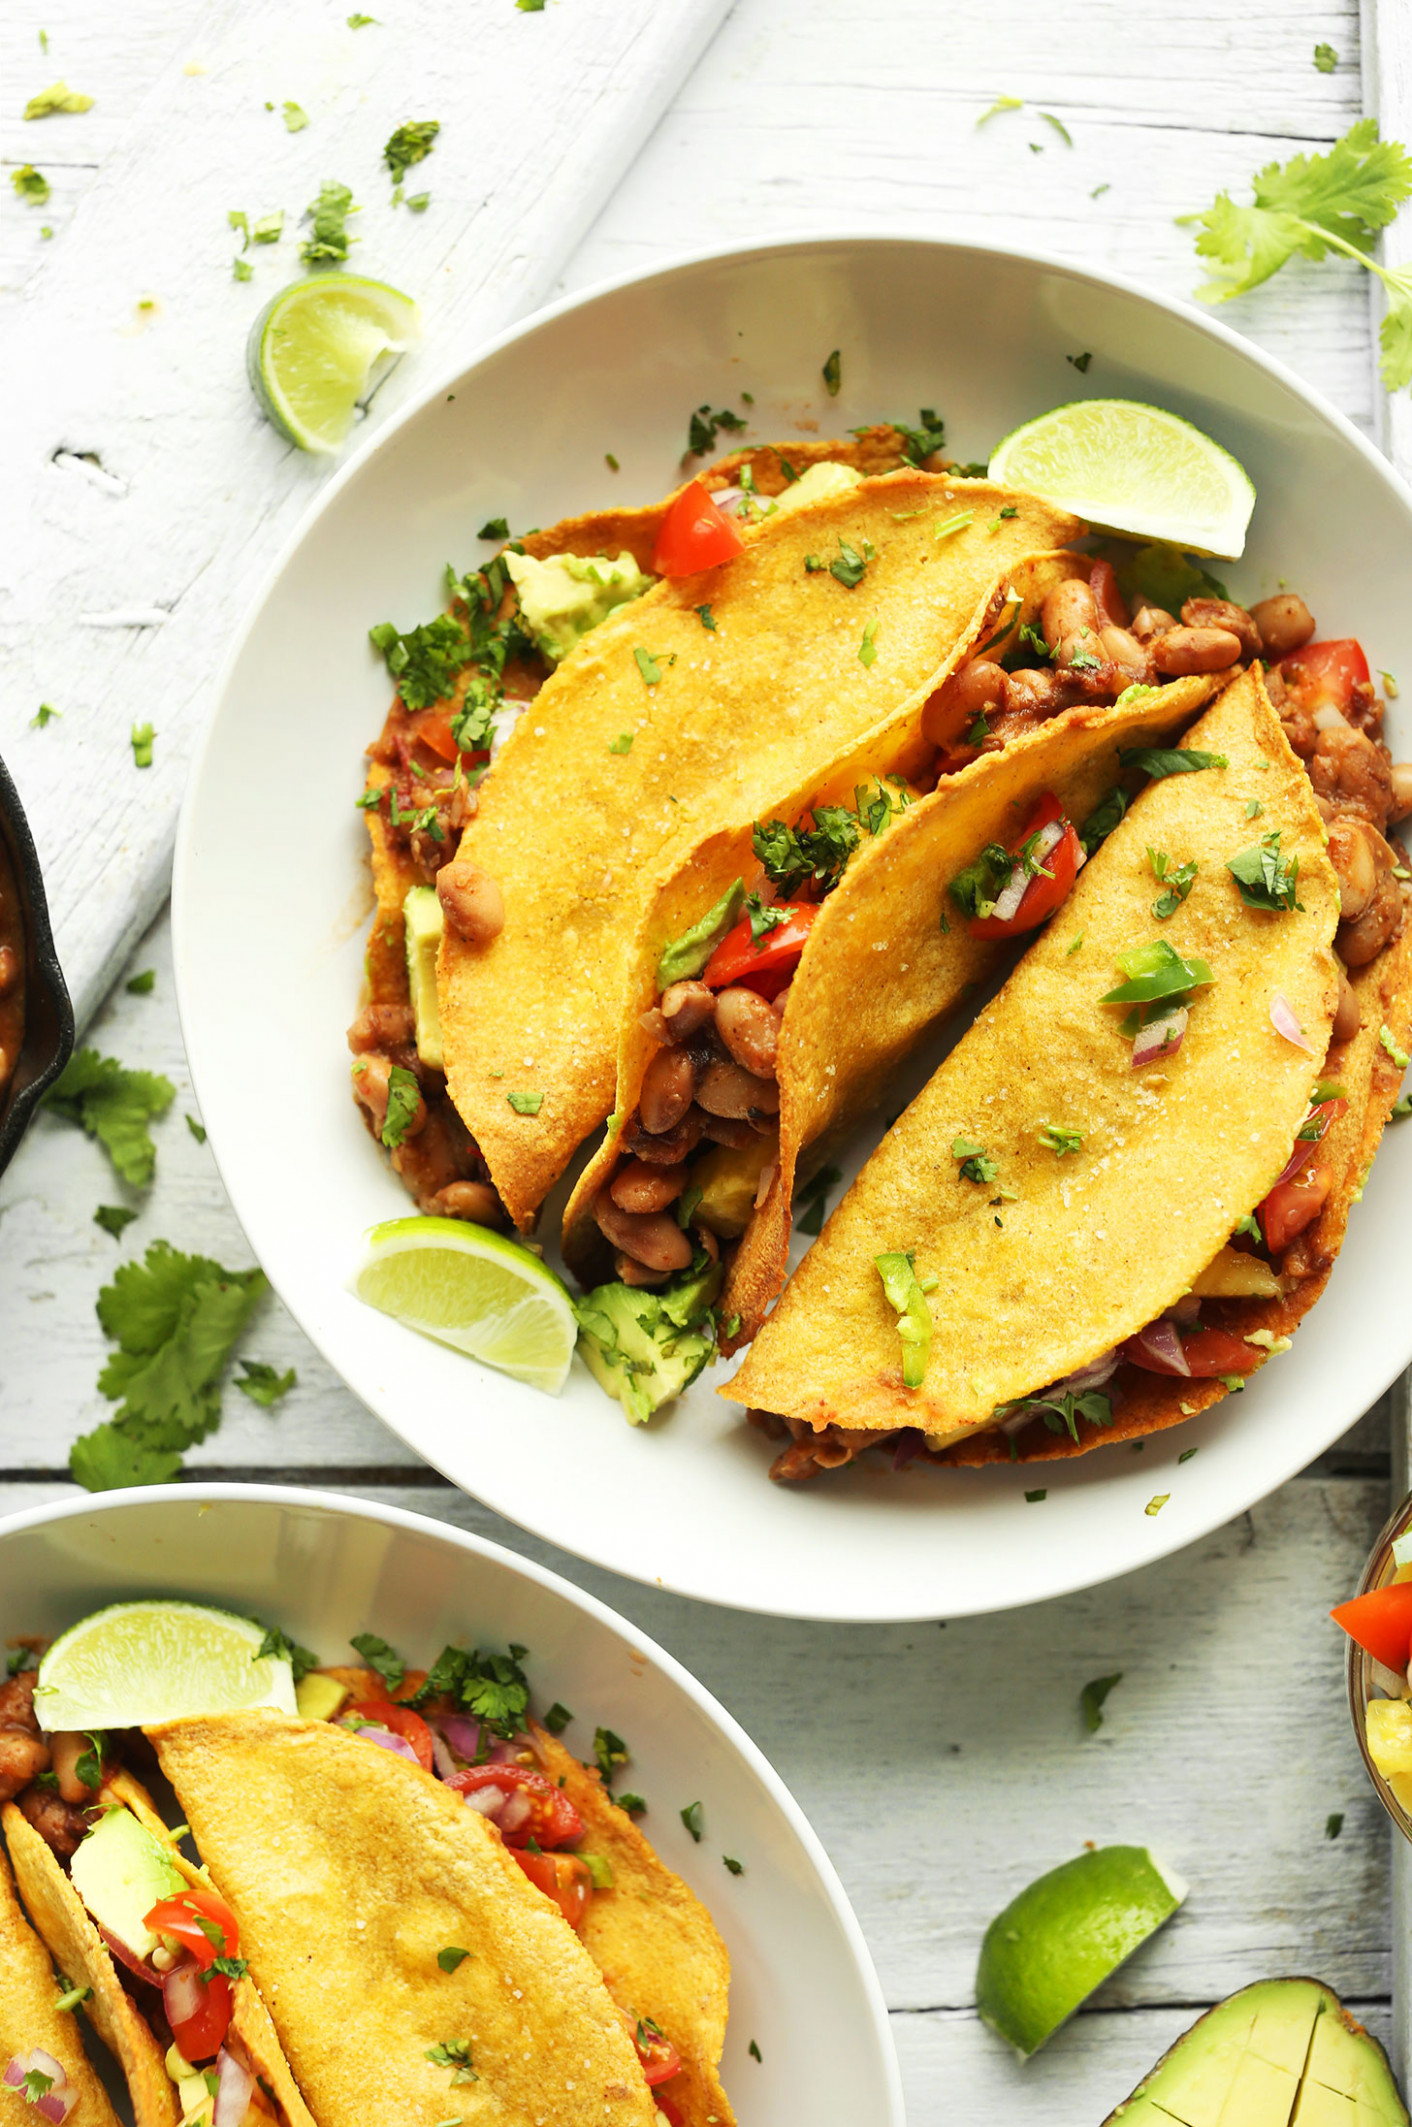 Crispy Baked Tacos with Pineapple Salsa - recipe vegetarian tacos filling